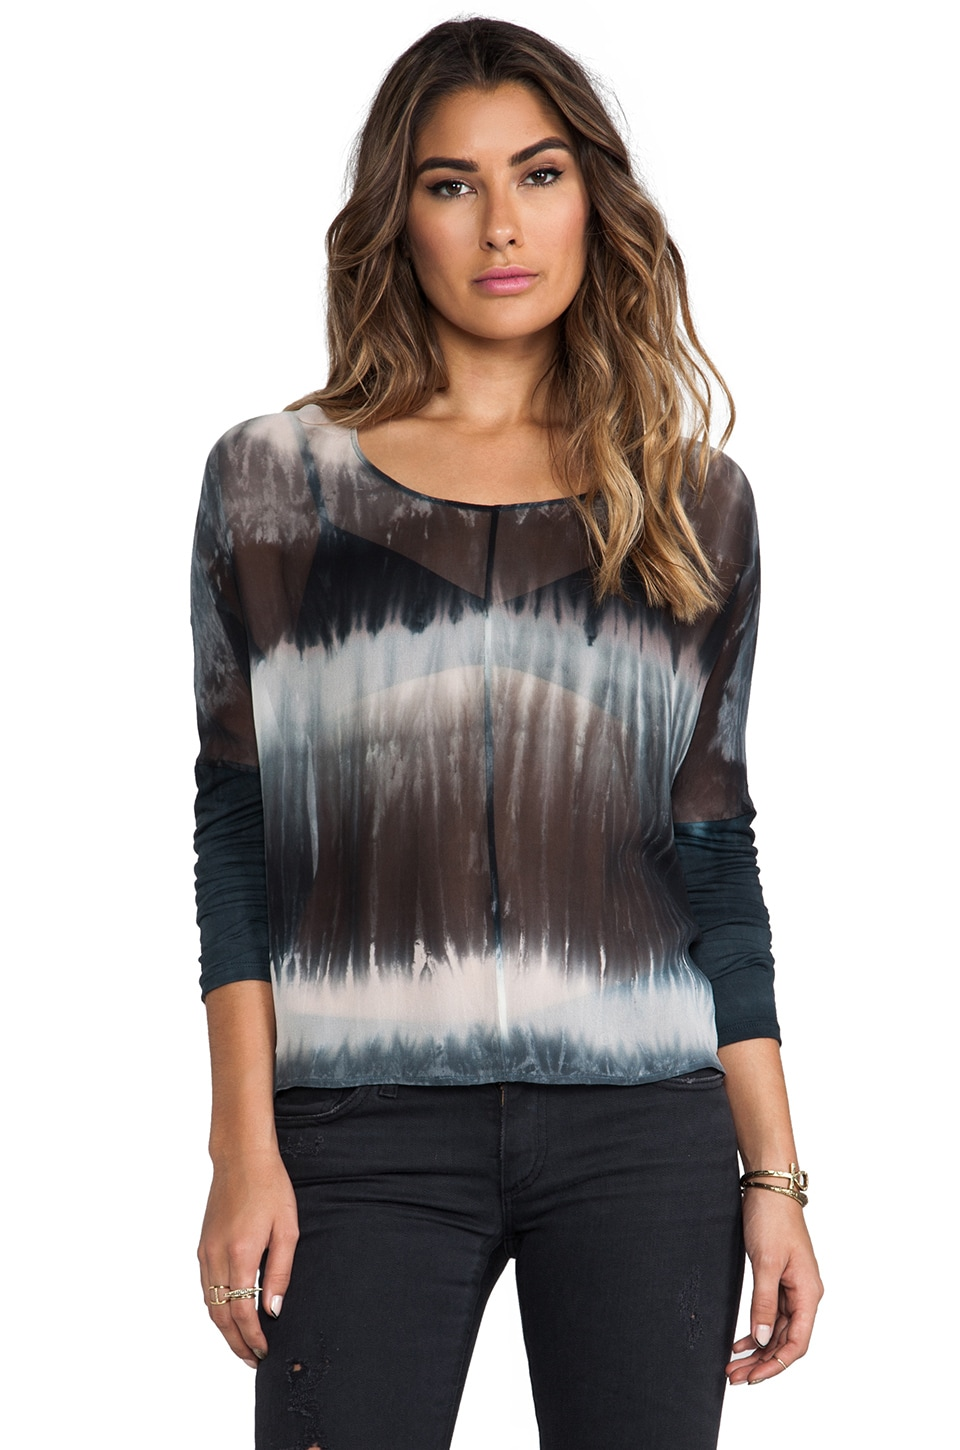 Gypsy 05 Klimt Mixed Silk Oversized Top in Smoke